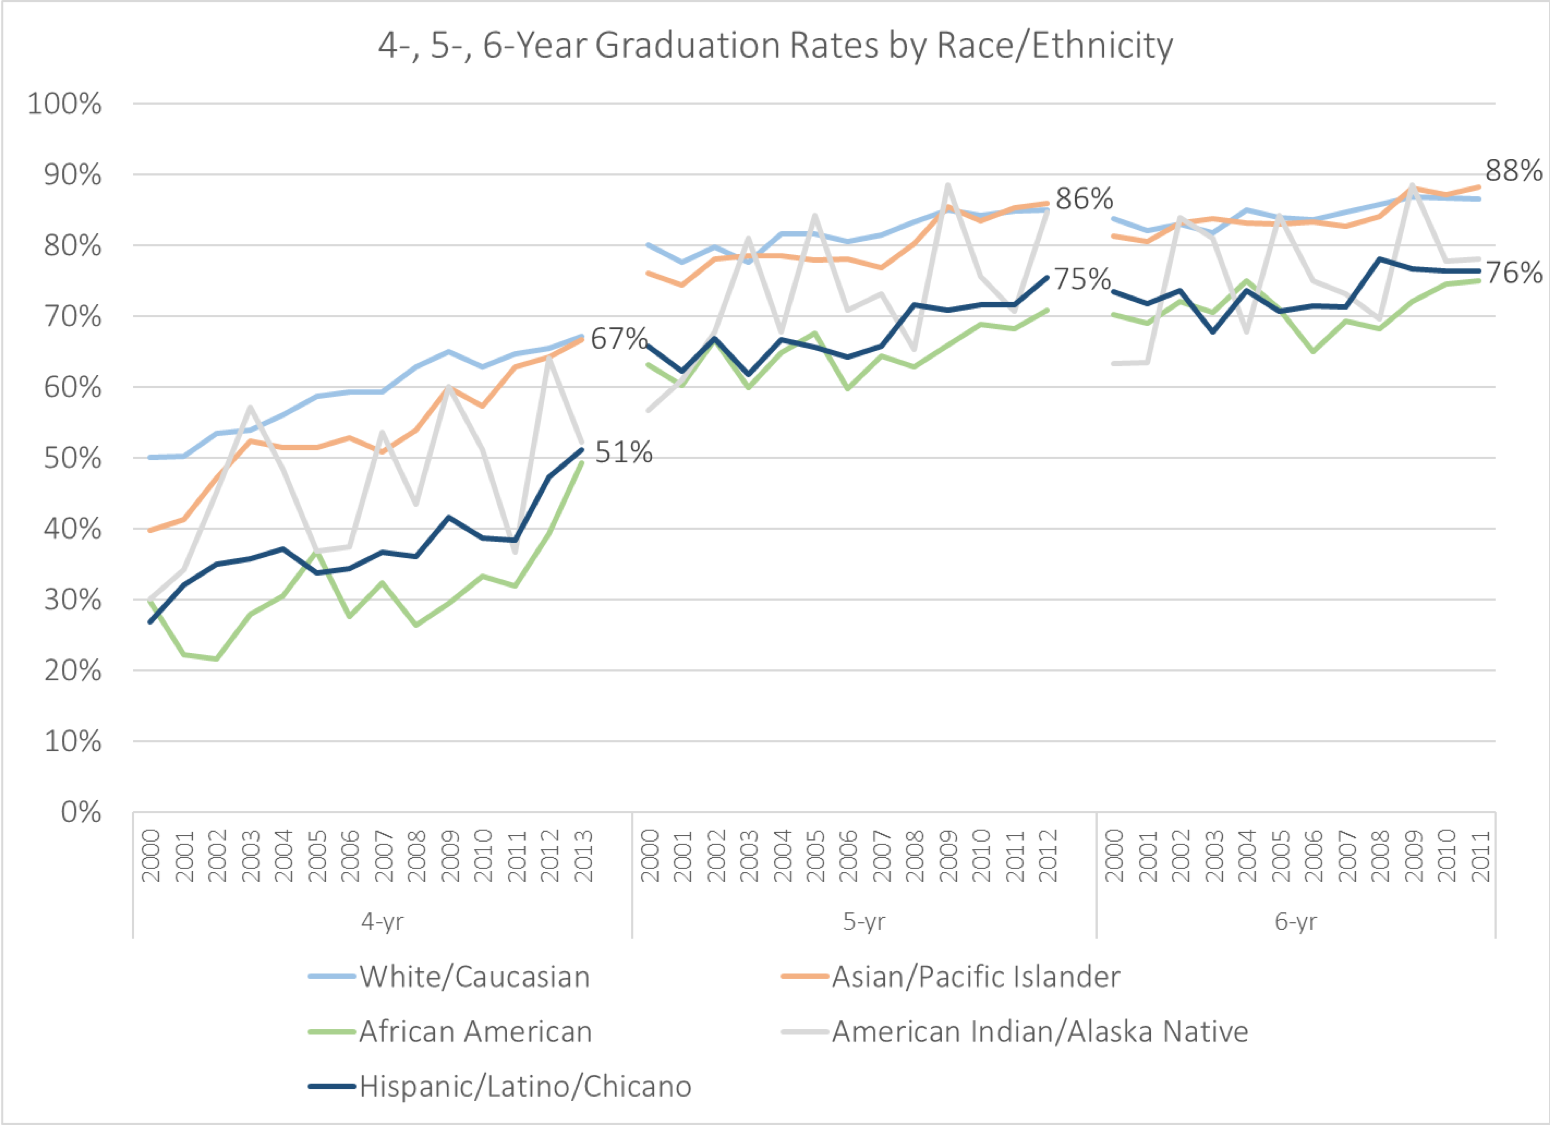 Figure 18. gaps in 4-, 5-, 6- graduation rates between chicanx/latinx and white or asian students have persisted over several cohorts. source: Budget and institutional analysis/student Retention advisory committee